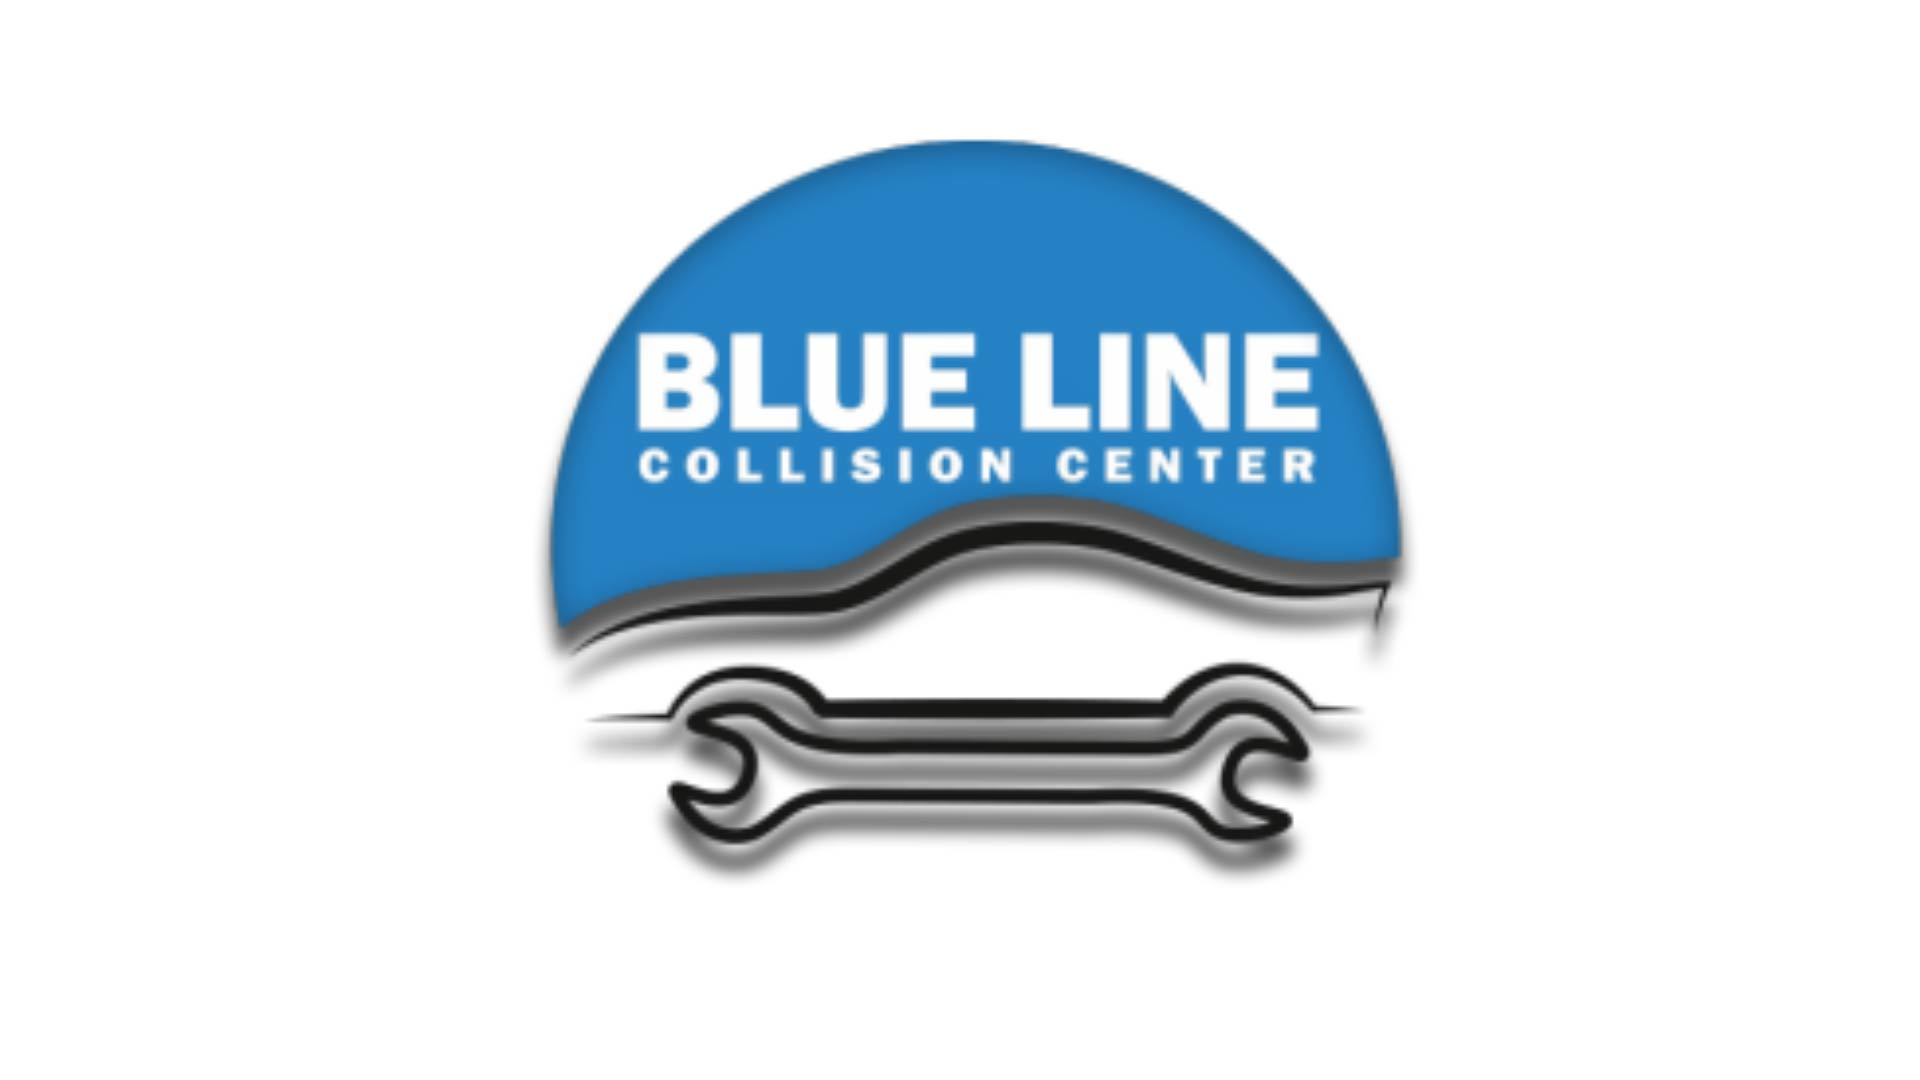 Blue Line Collision